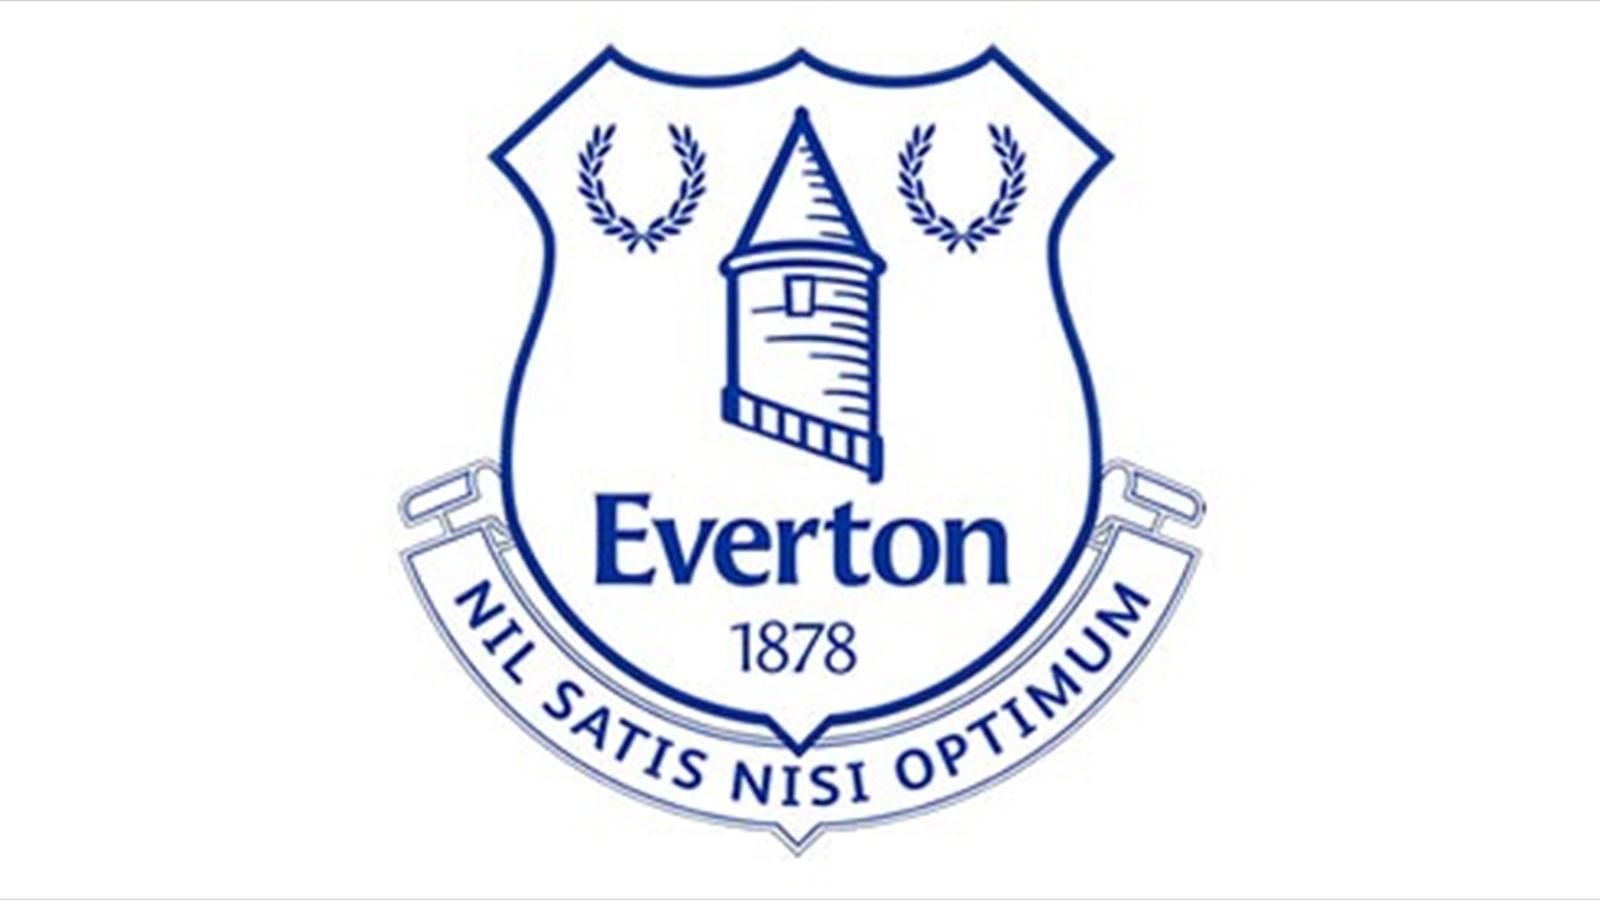 everton - photo #32